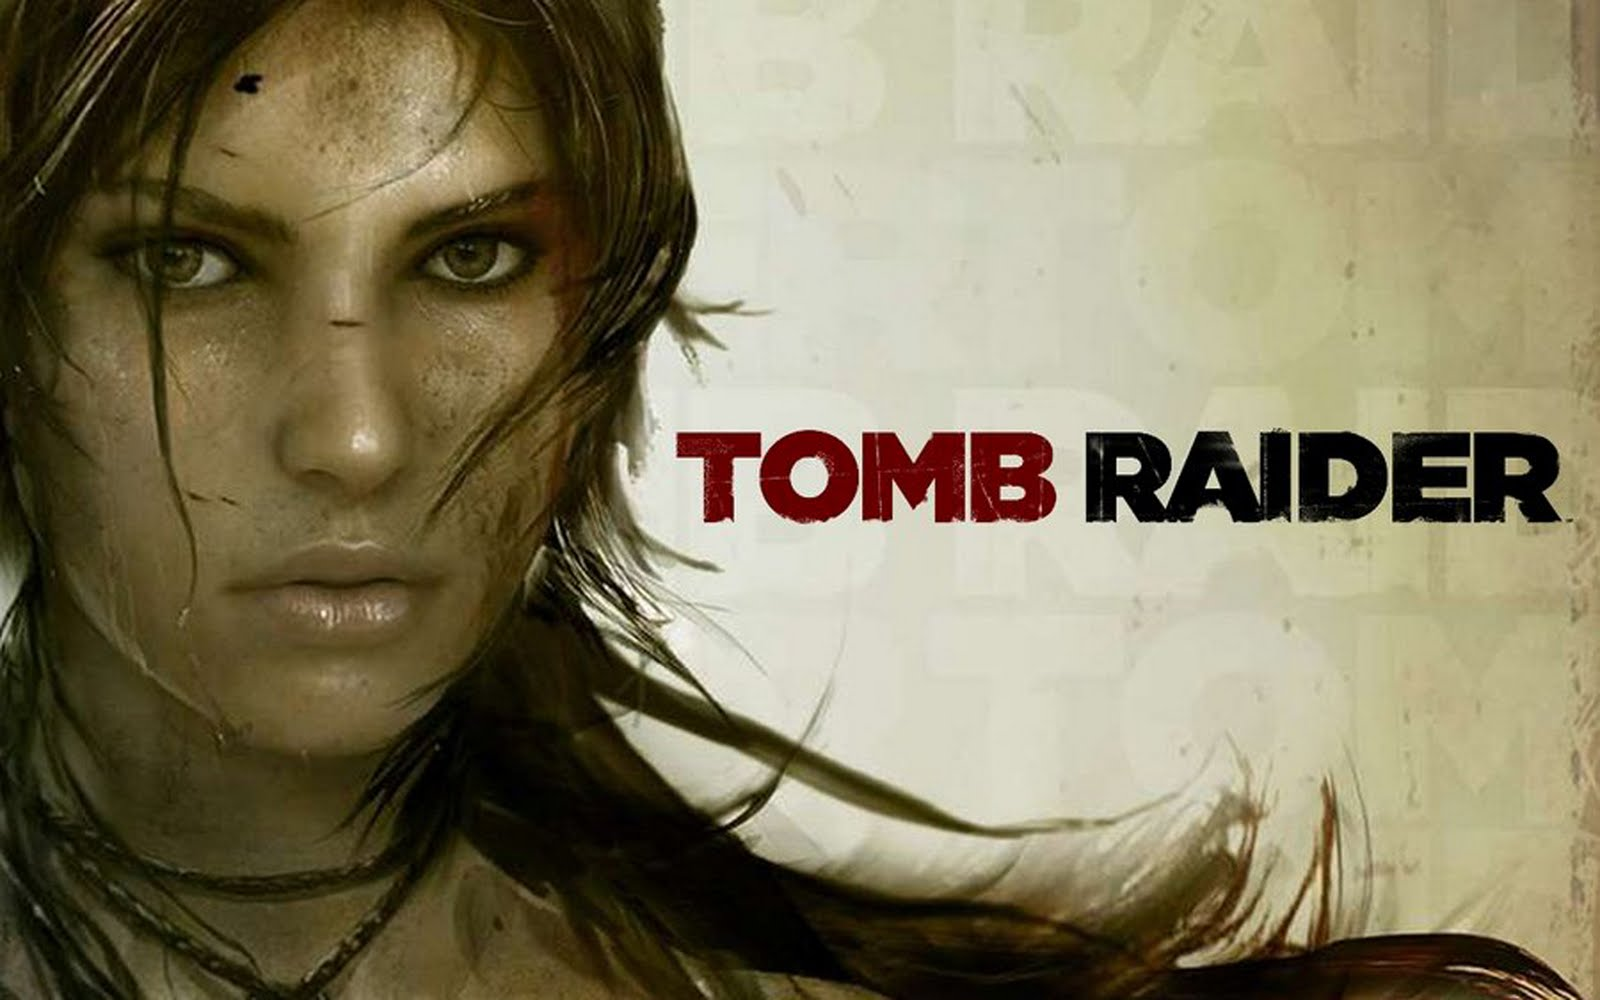 tombraider header 09012013